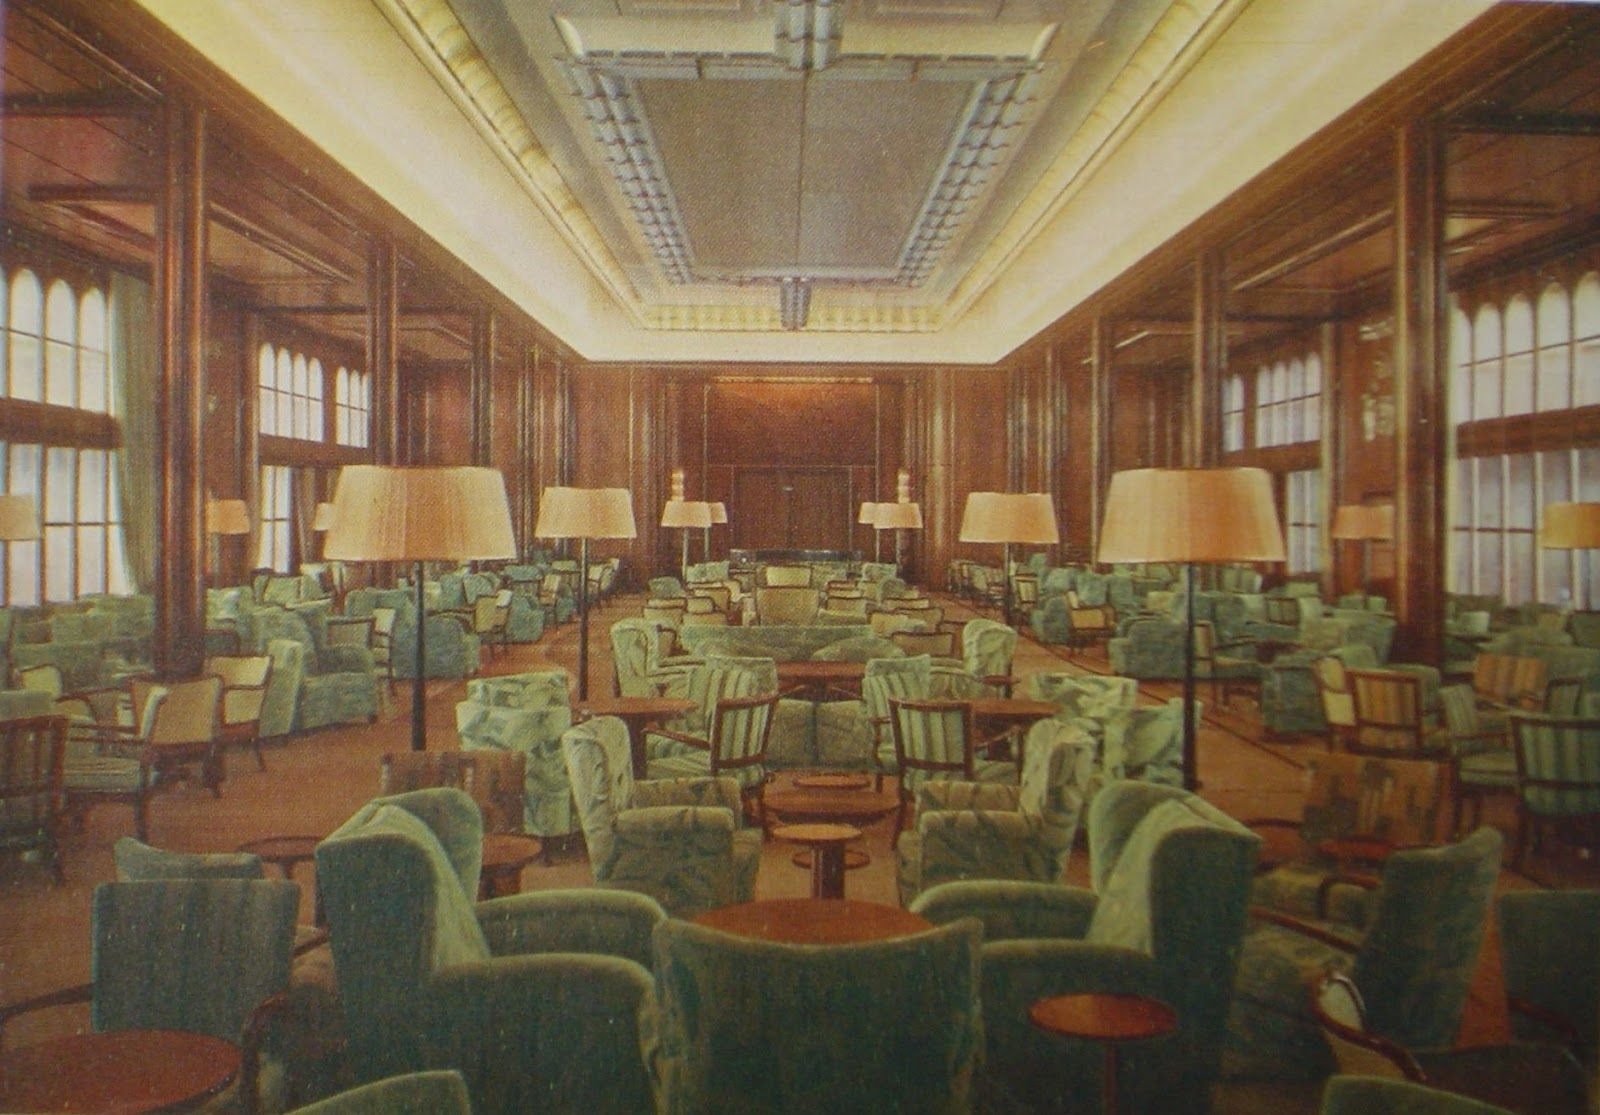 First class main lounge aboard the liner bremen c1929 s s bremen 1929 1941 pinterest - Inside mobel bremen ...